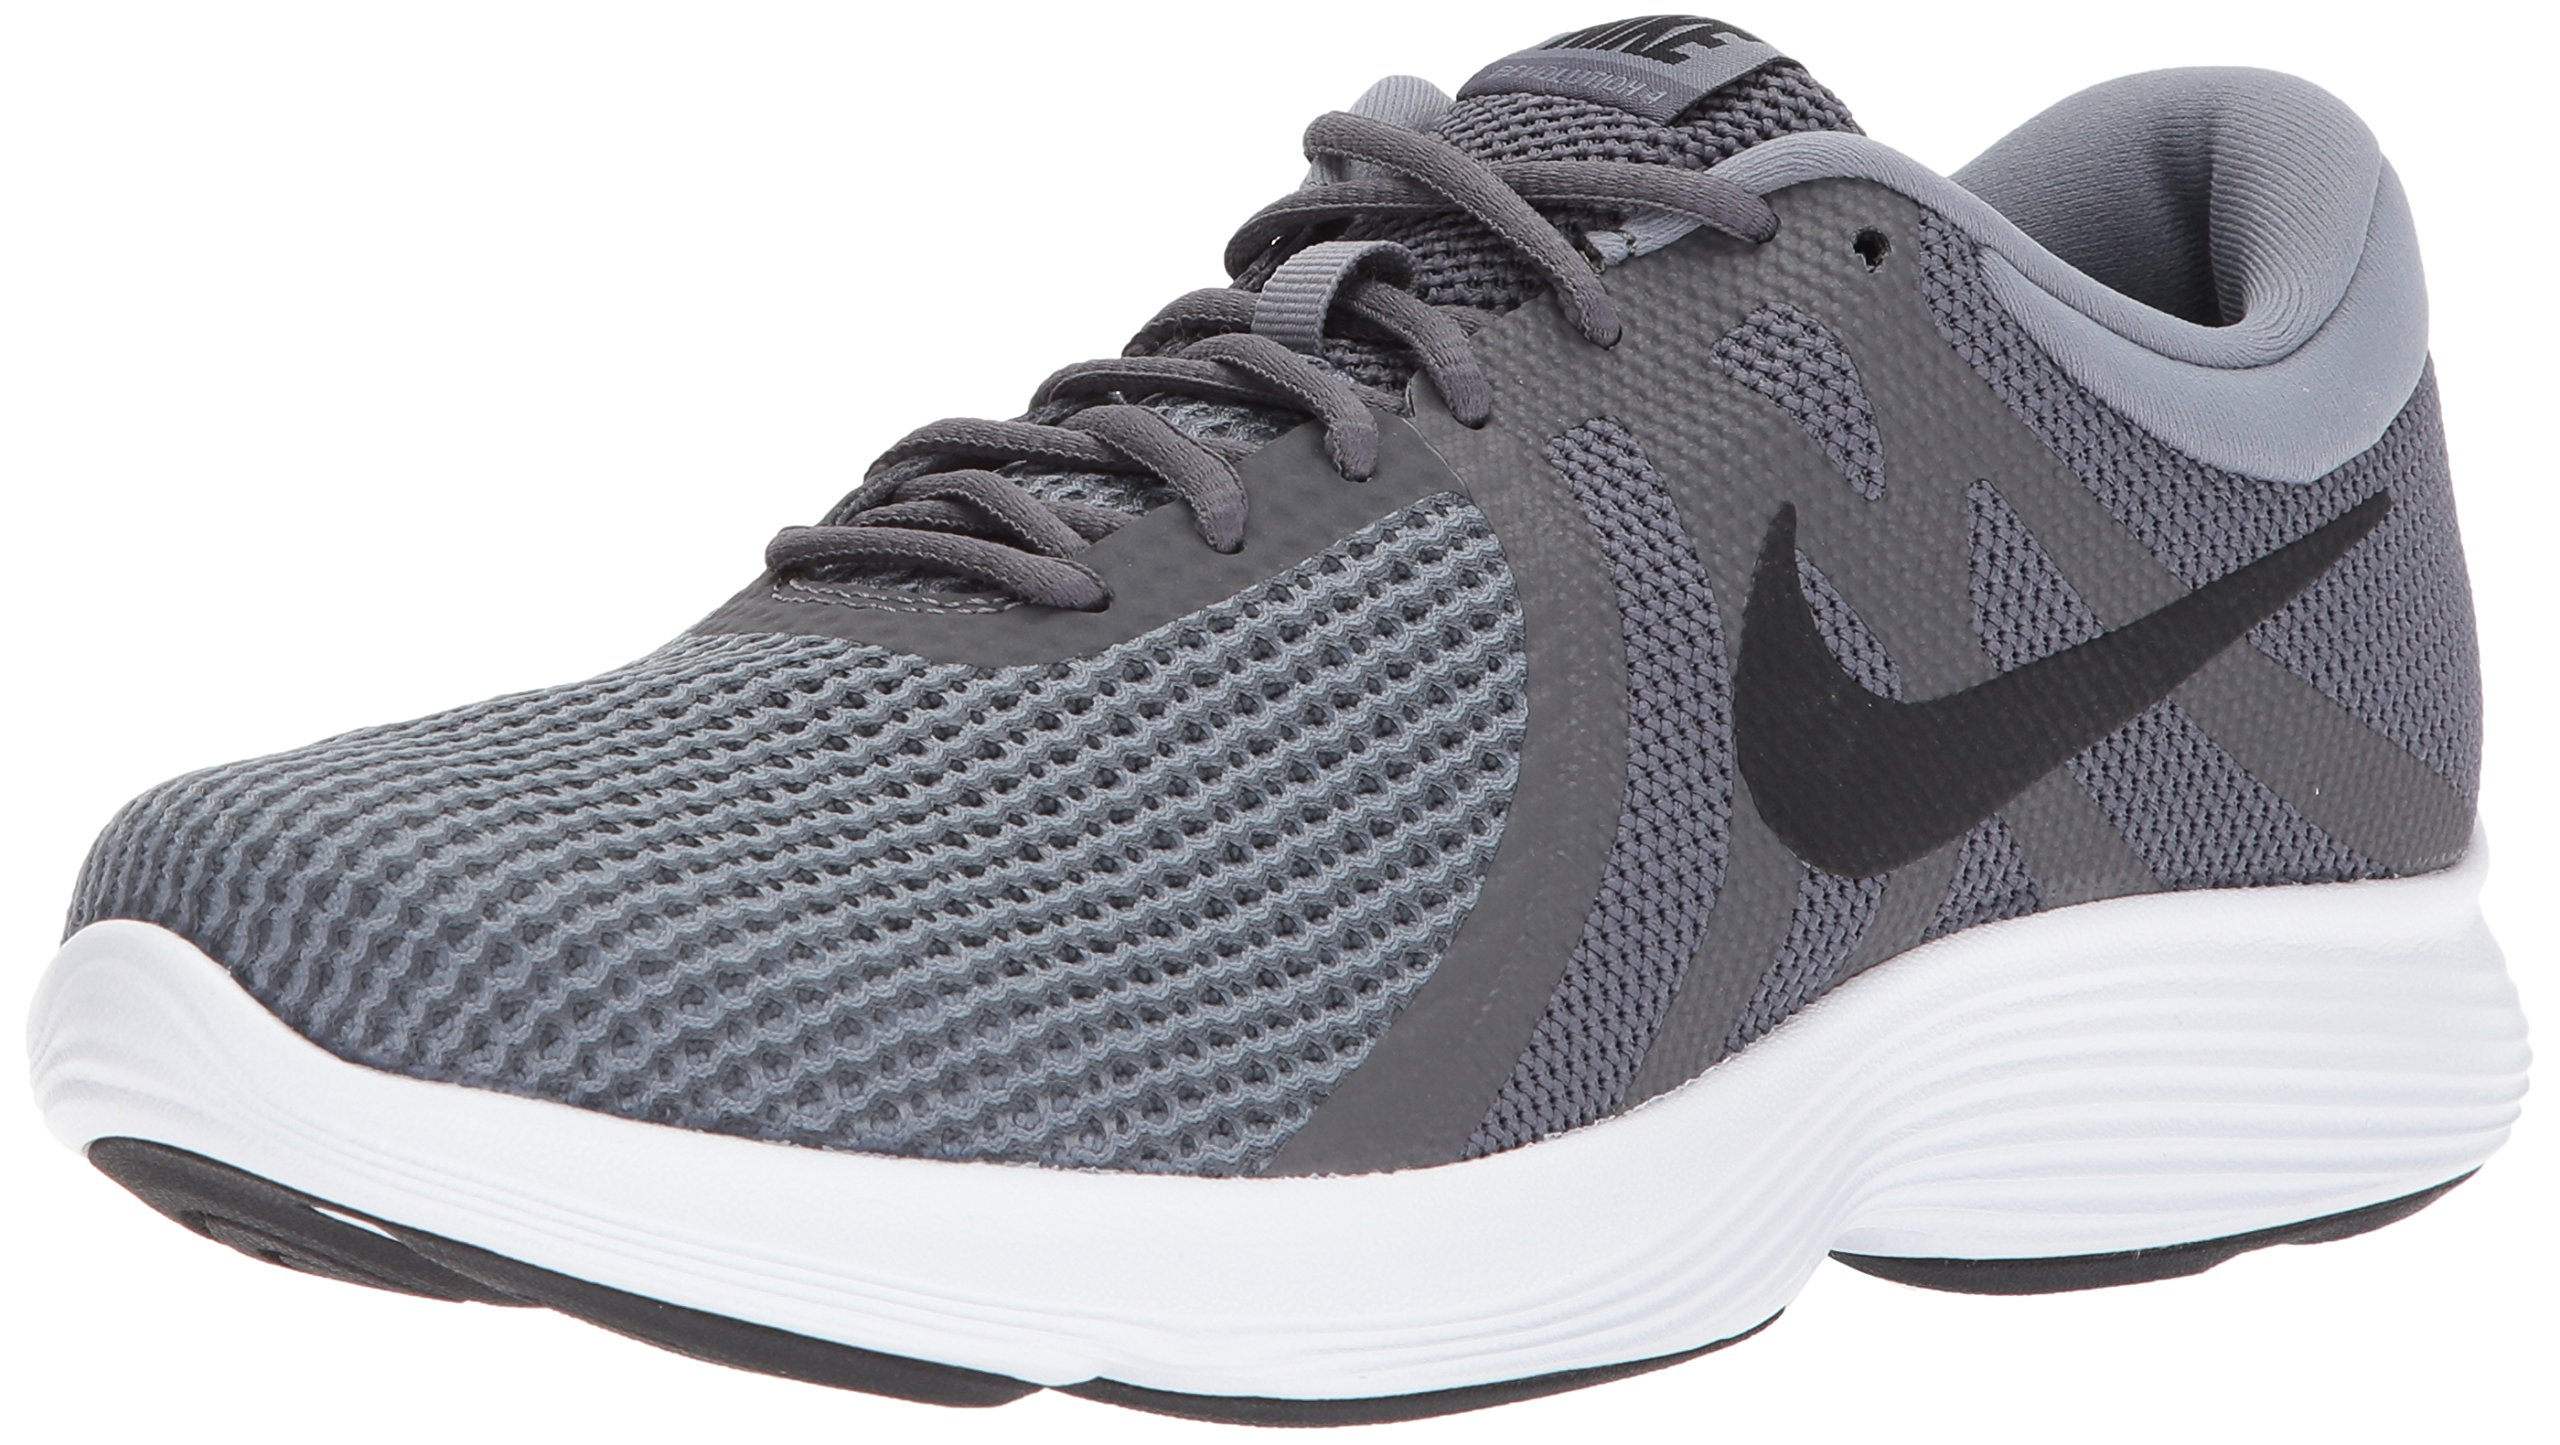 Nike Men's Revolution 4 Running Shoe, Dark Black-Cool Grey/White, 11.5 Regular US by Nike